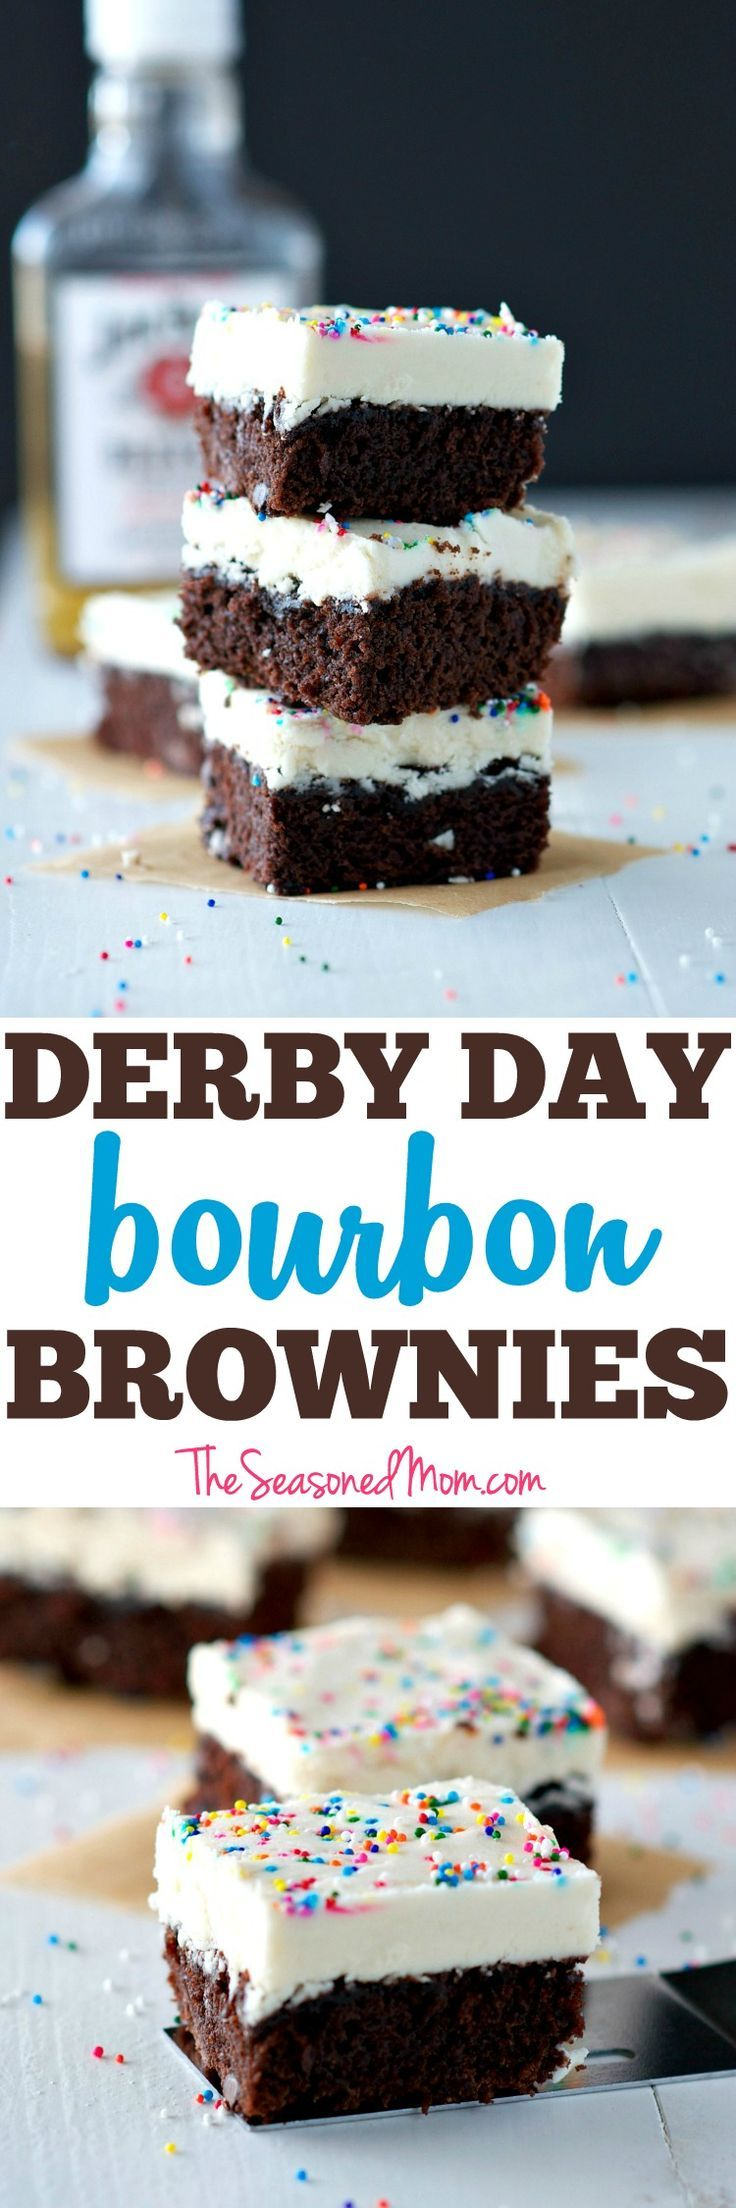 Easy derby party recipes